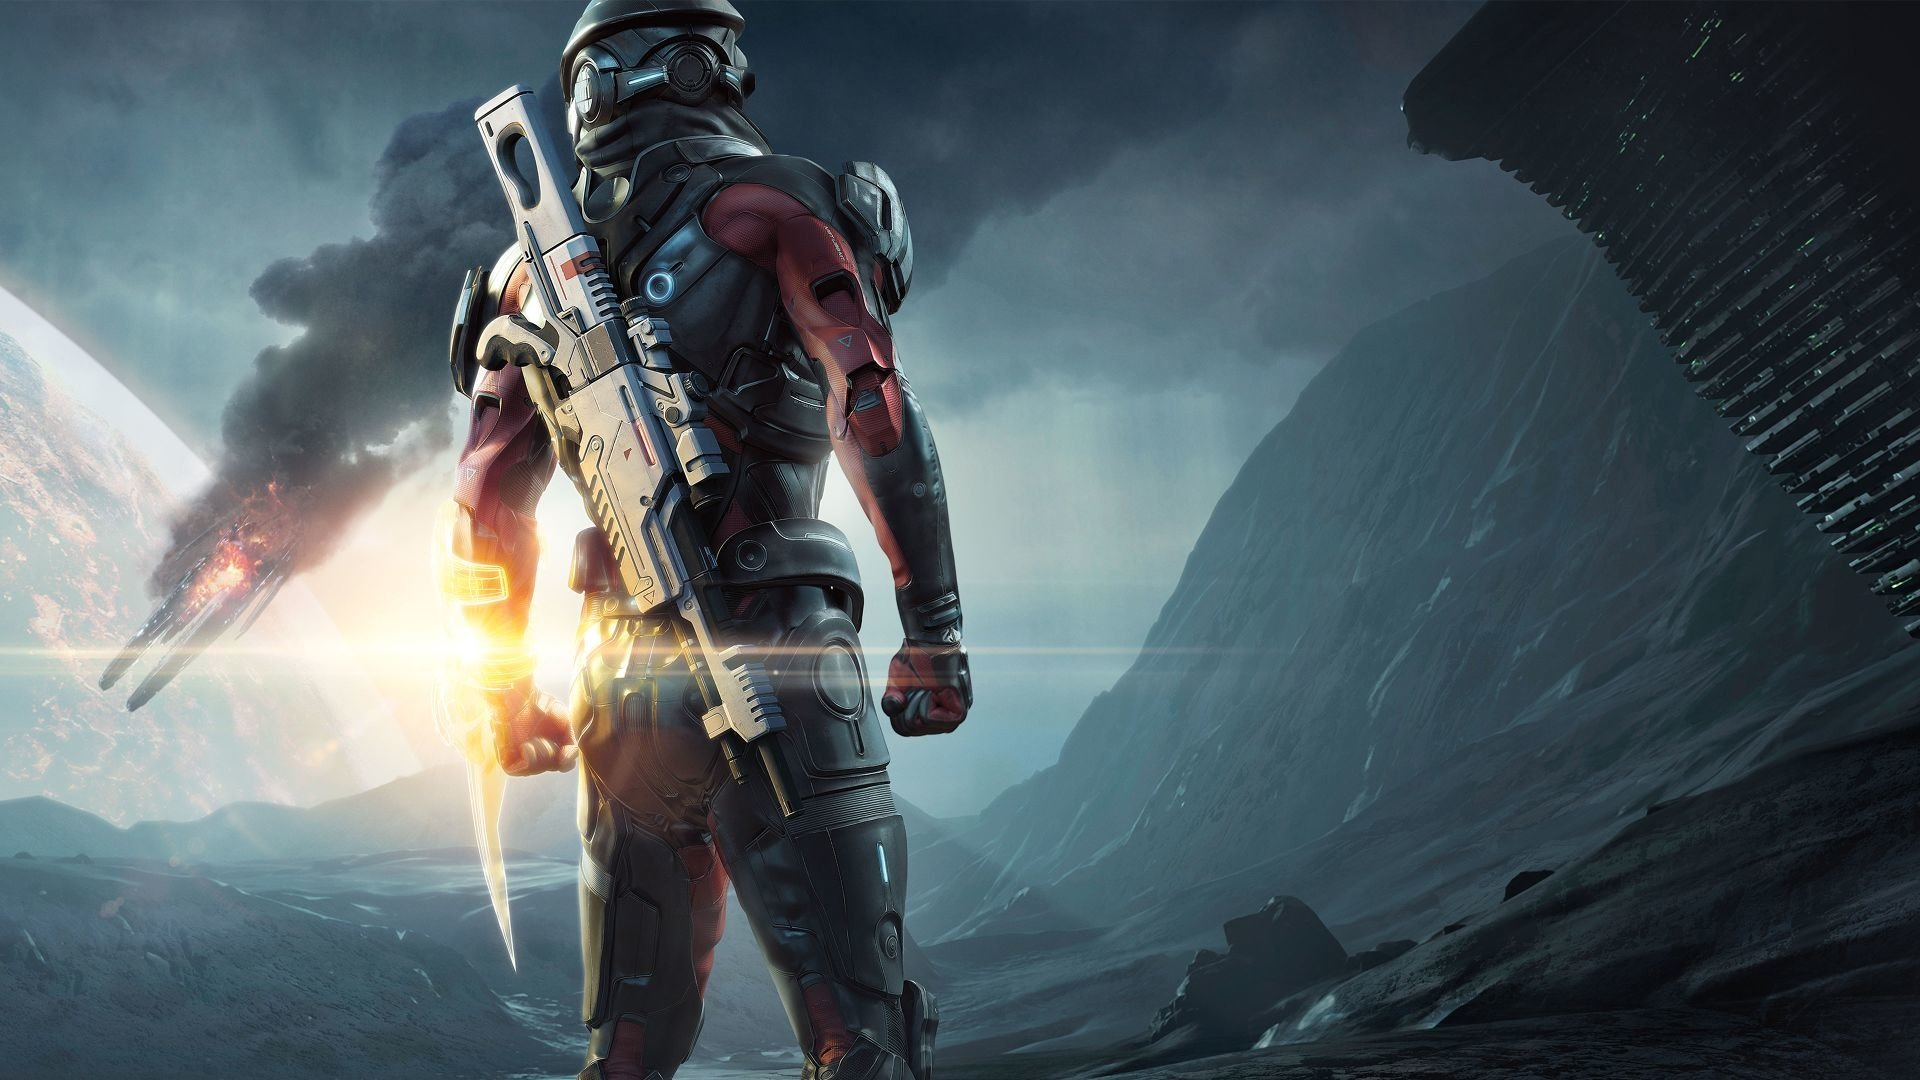 Mass Effect Andromeda Wallpapers ID761516